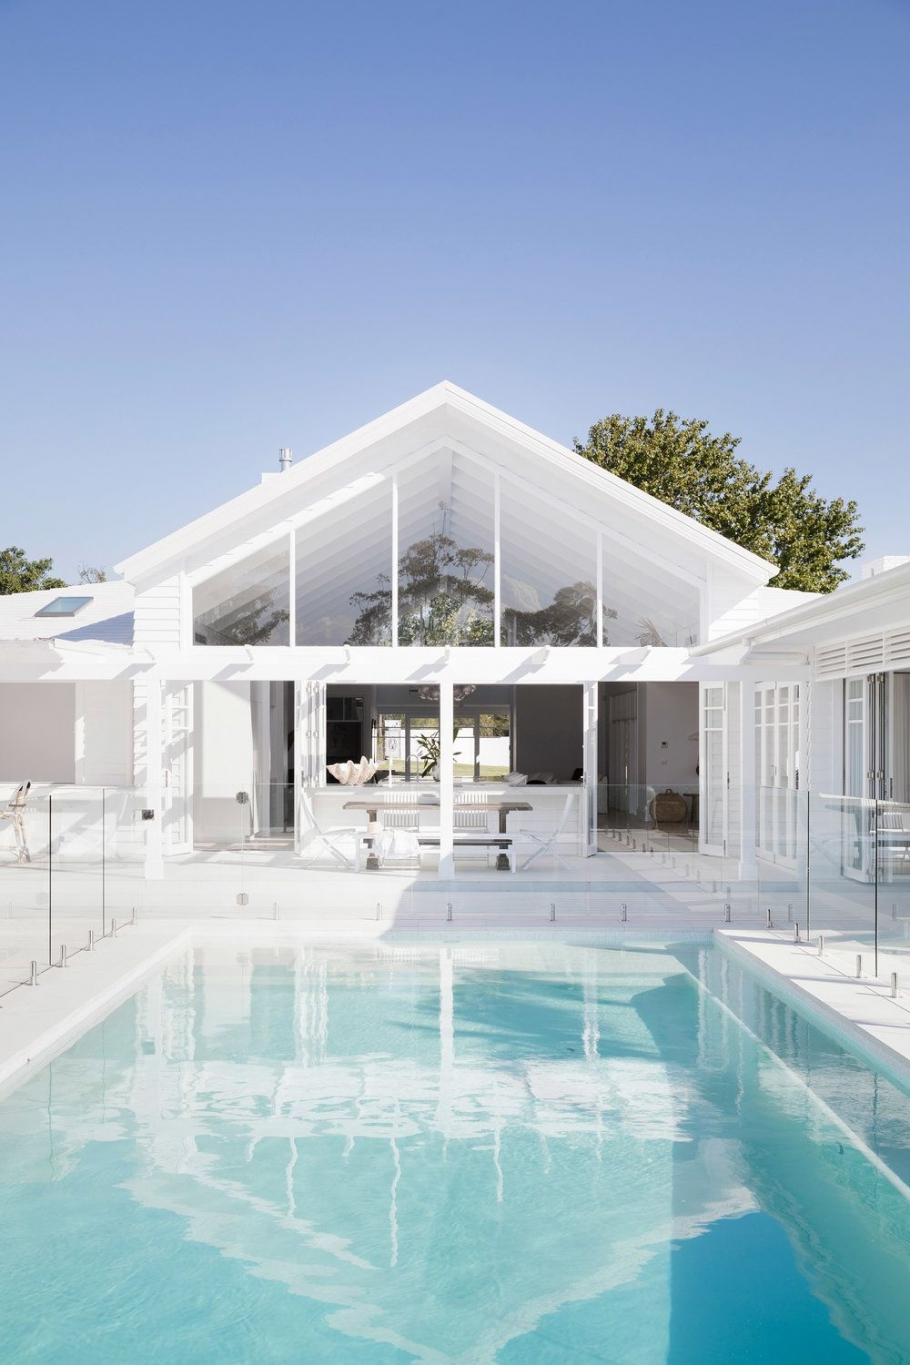 86 Modern Shed Design Looks Luxury to Complement Your Home-9475